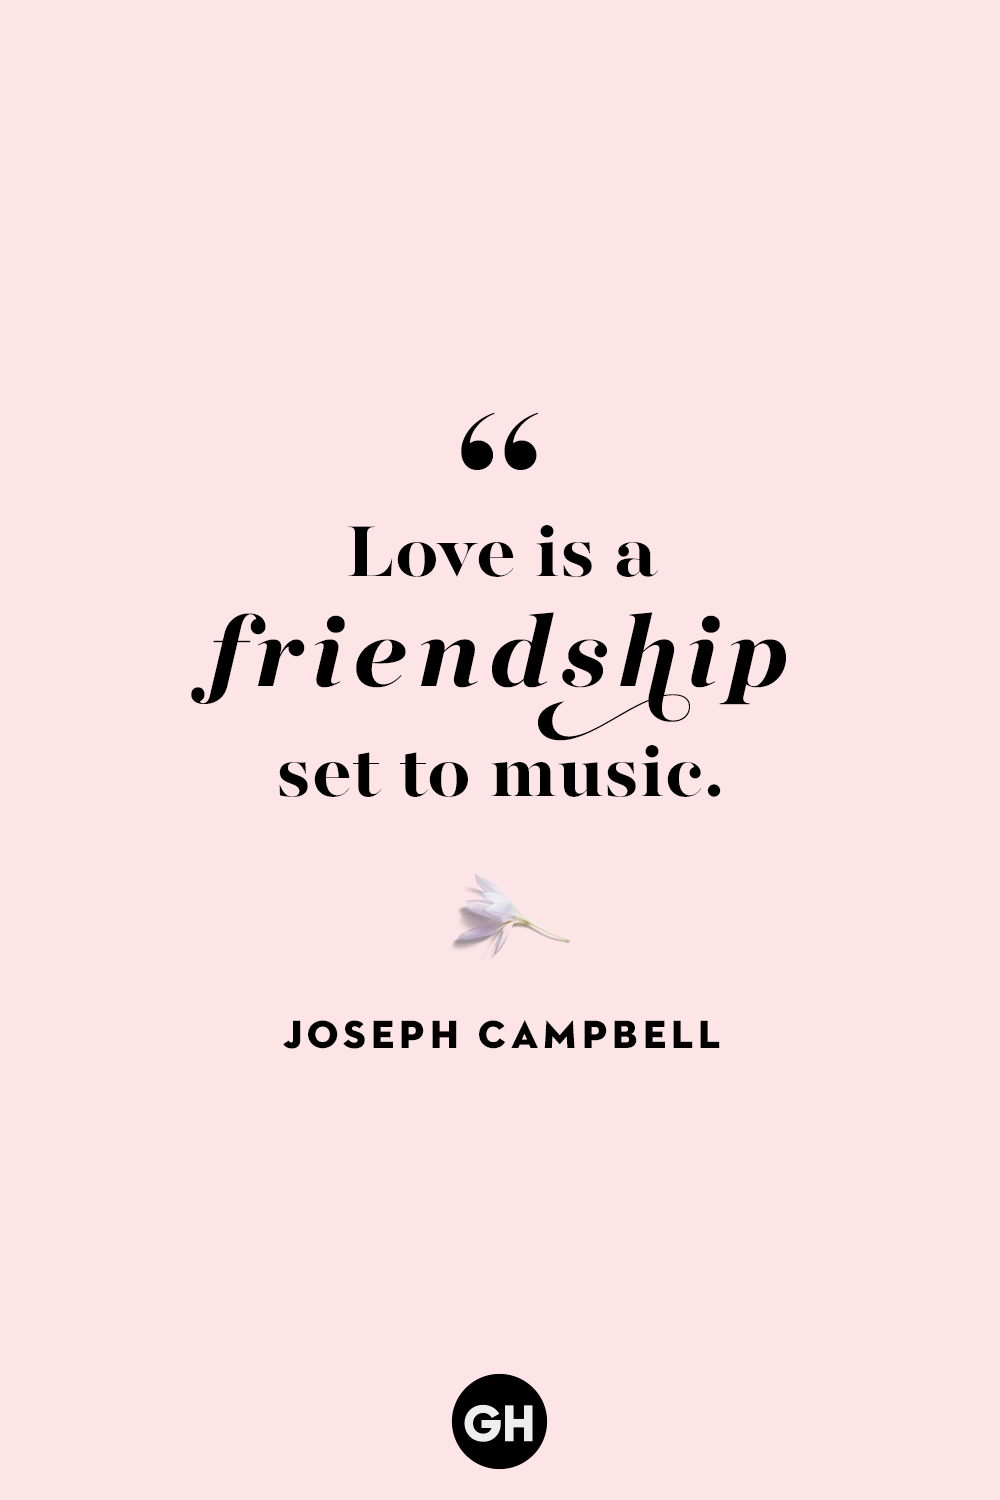 marriage quotes joseph campbell